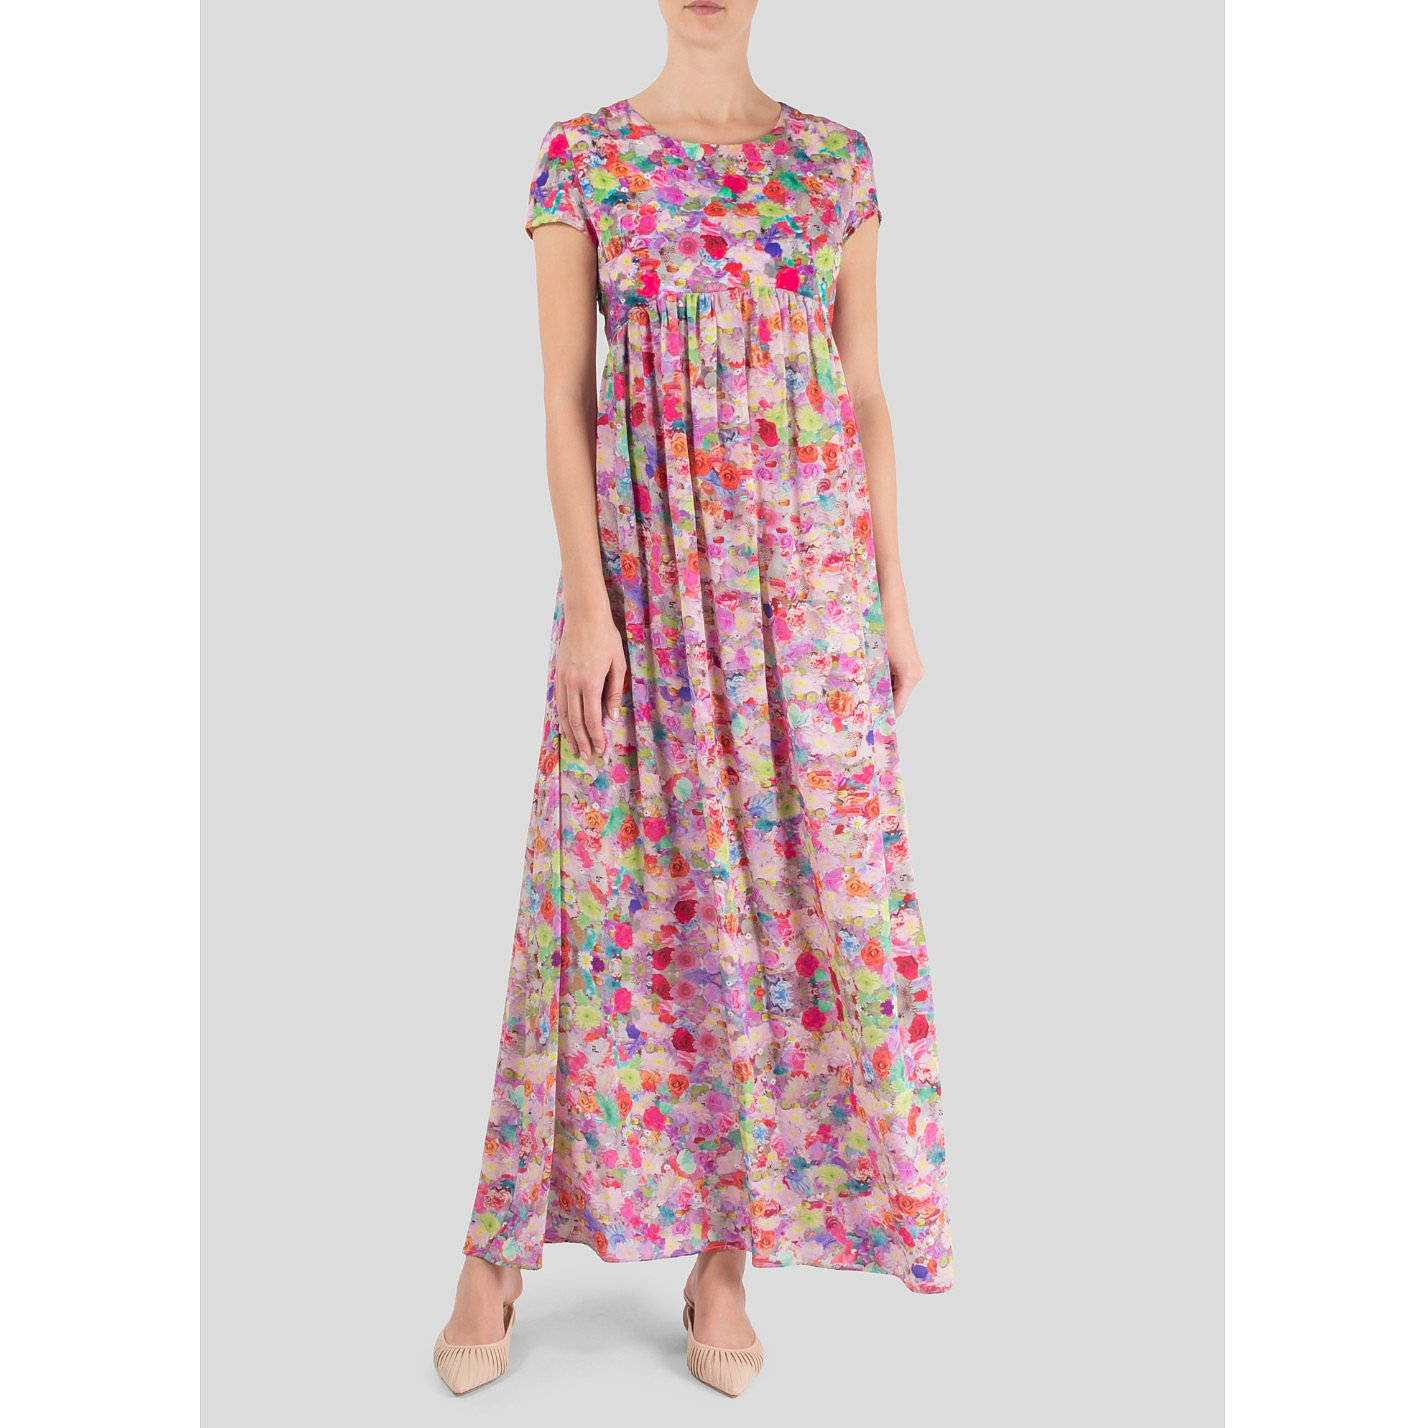 Tramp In Disguise Floral Maxi Dress